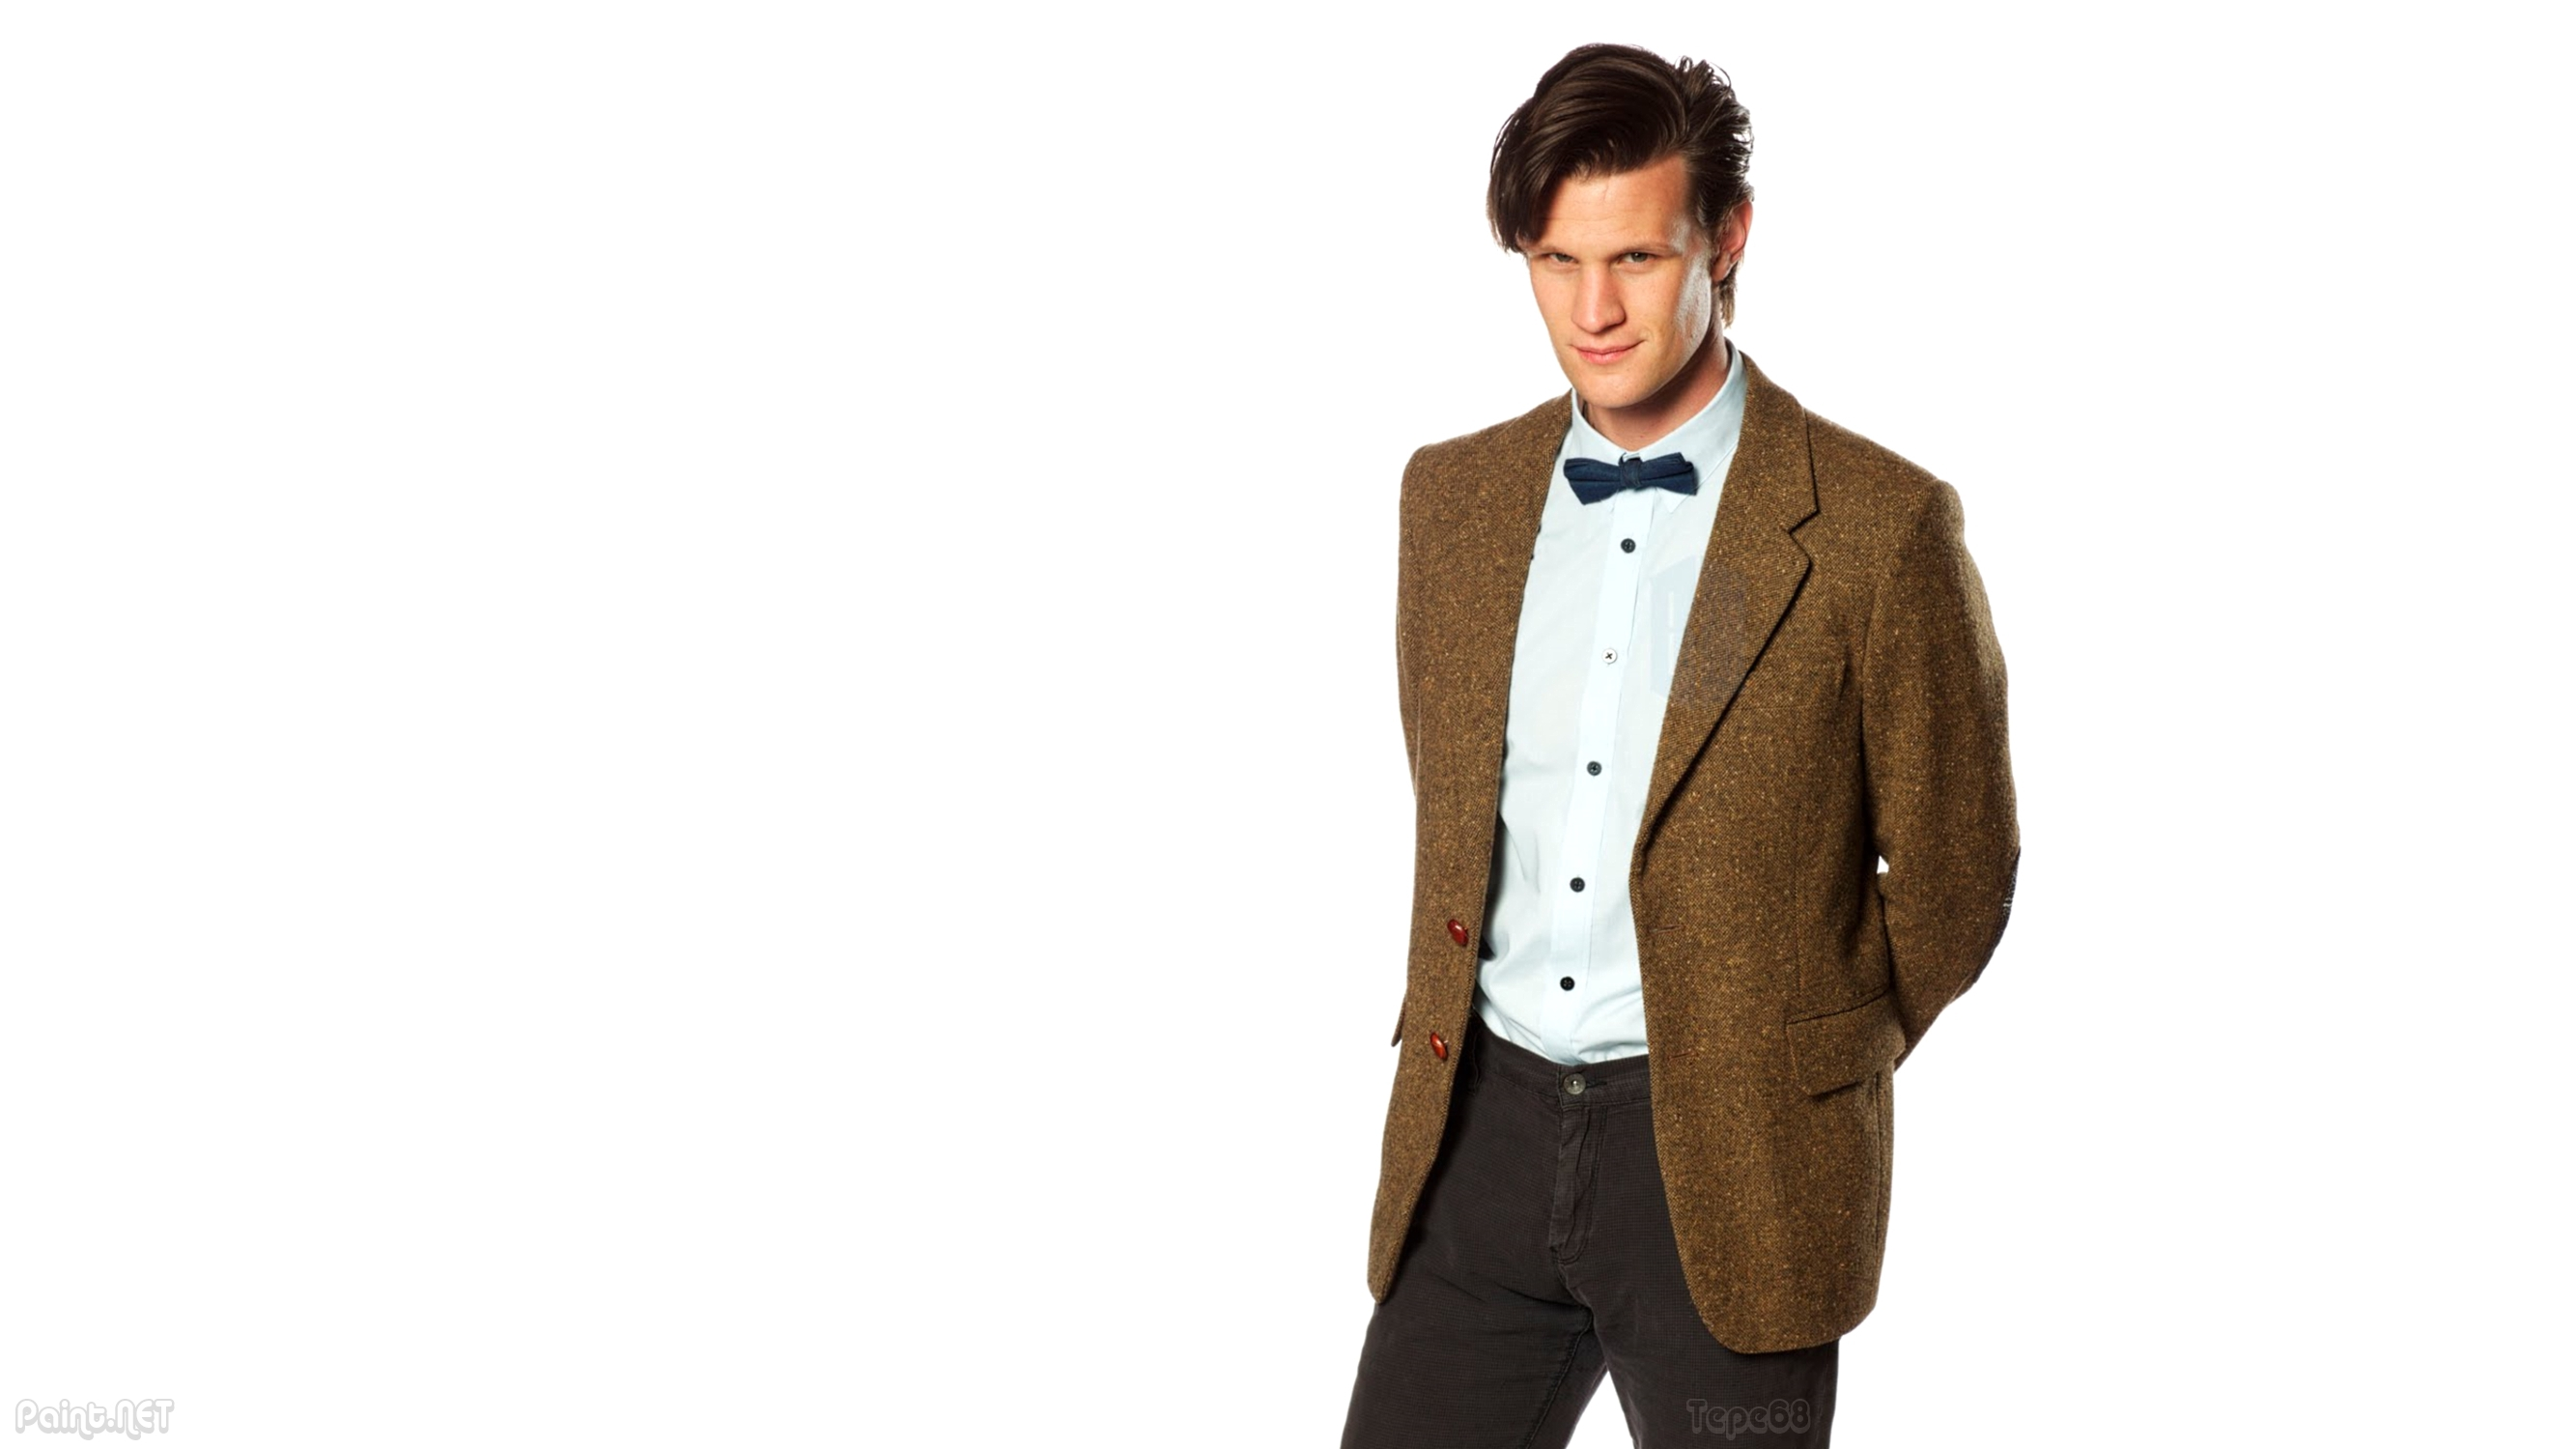 Matt Smith Wallpapers Images Photos Pictures Backgrounds 2667x1500